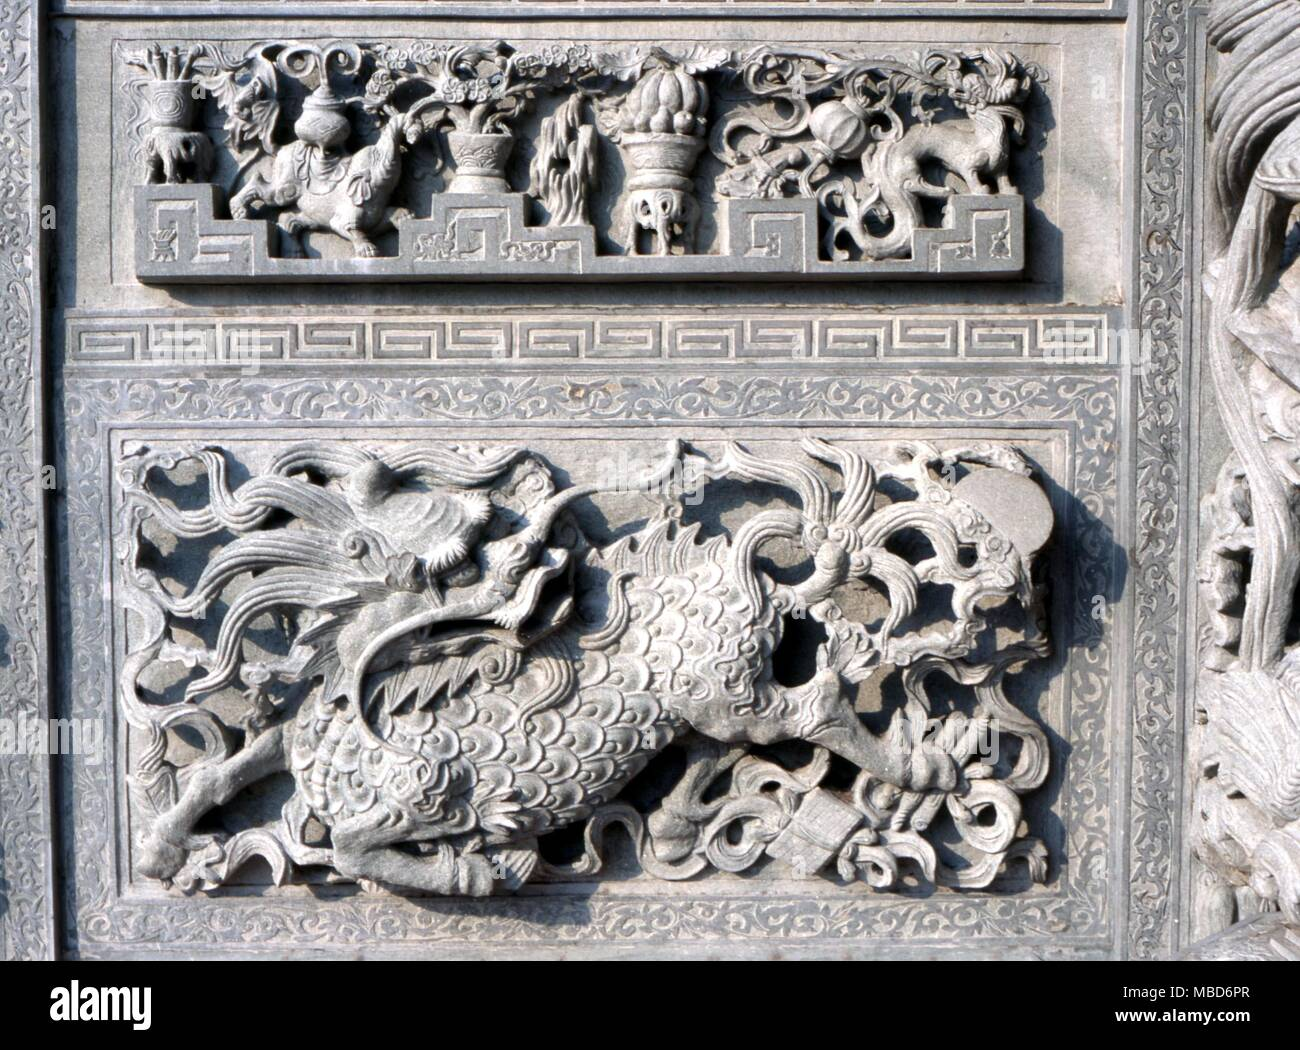 DRAGON - Relief image of a dragon on the outer wall of a